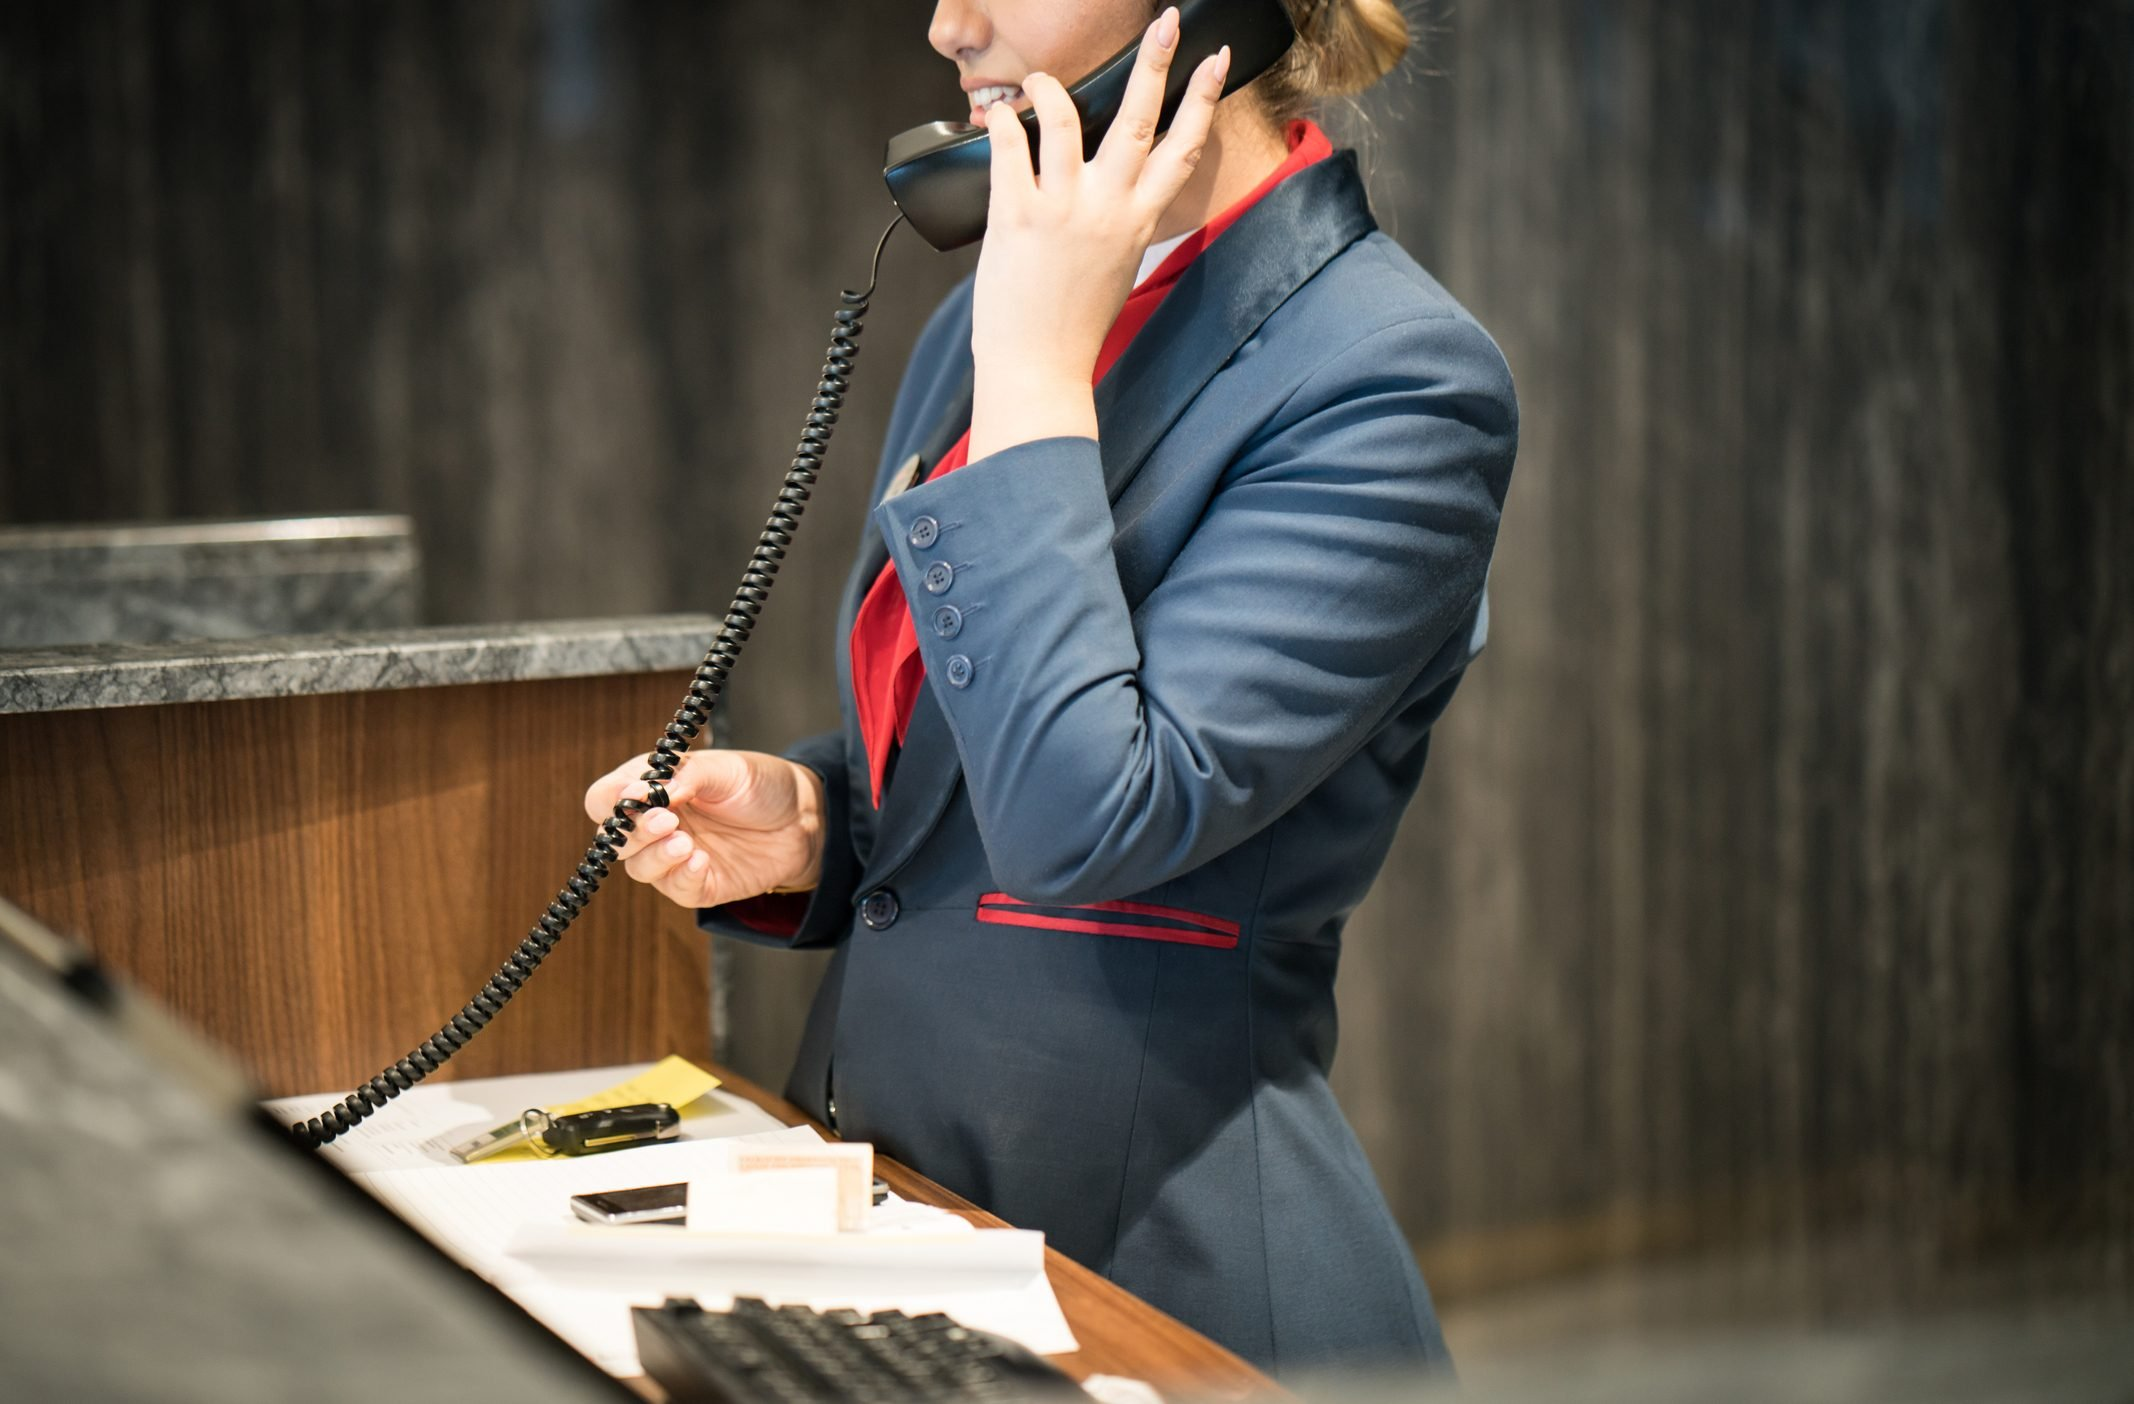 Nervous Hotel Receptionist Talking on Phone